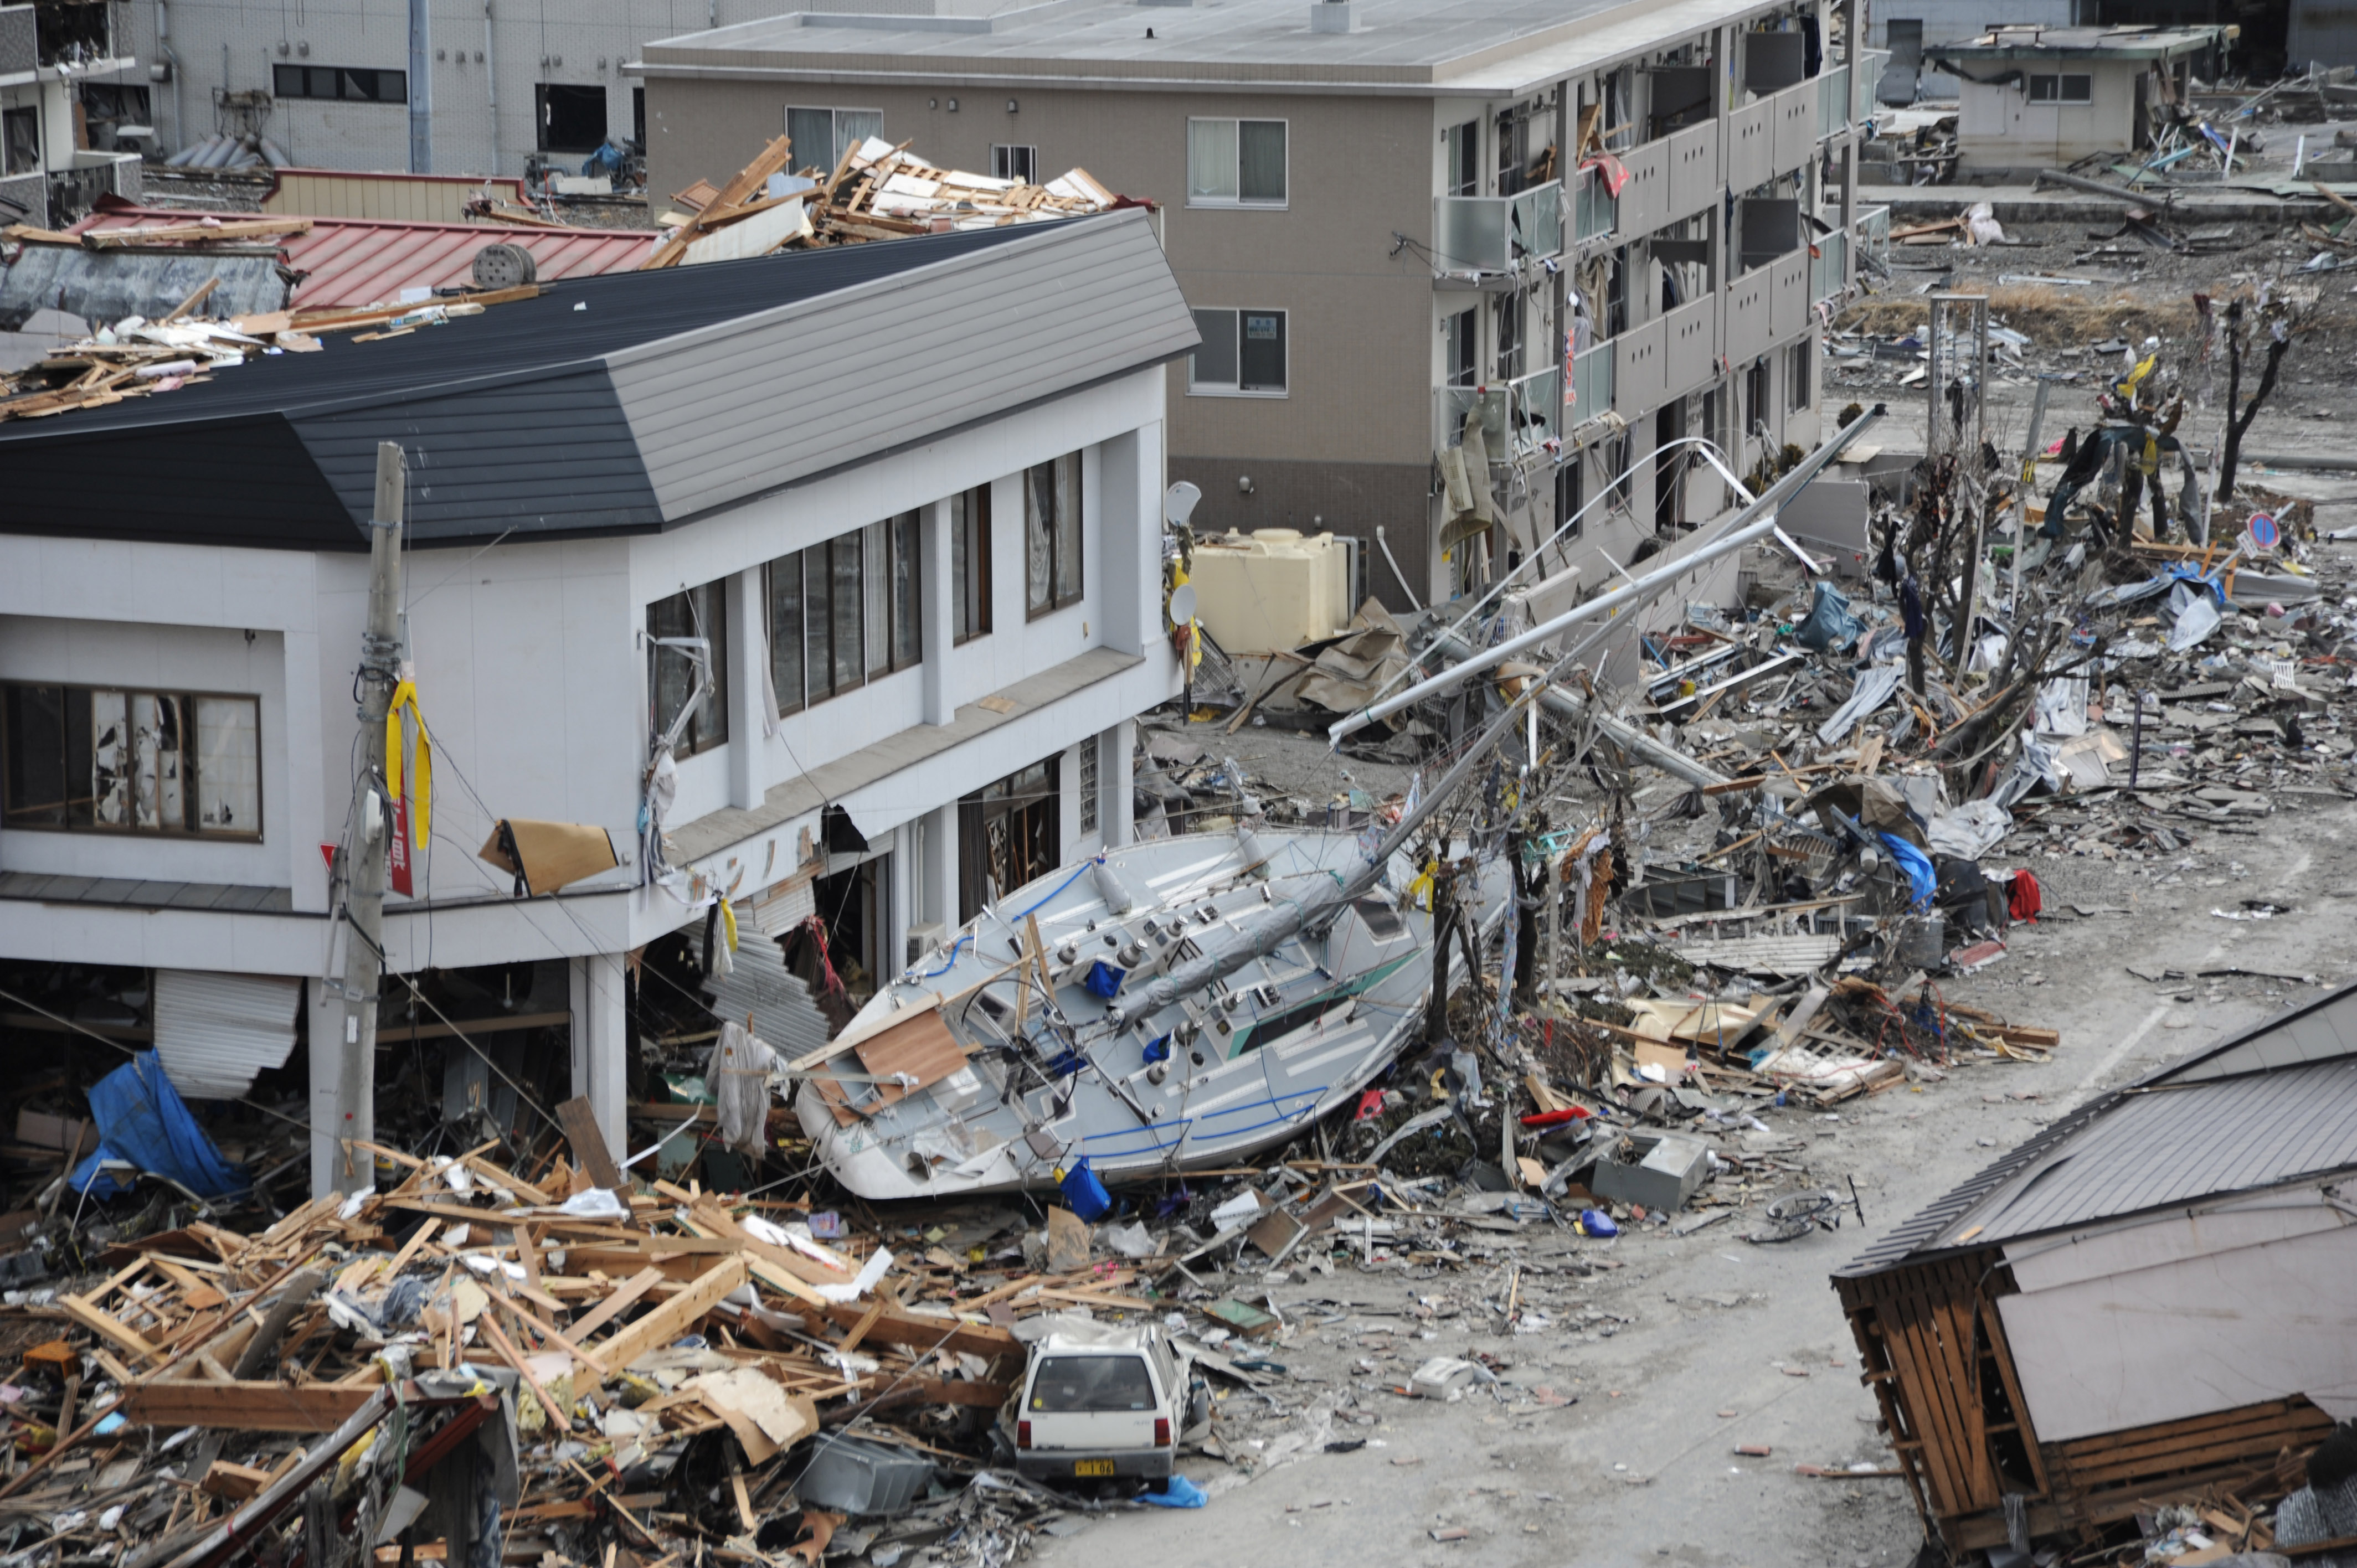 japan tsunami and earthquake The japan earthquake, tsunami and nuclear crisis on march 11, a powerful, magnitude 90 quake hit northeastern japan, triggering a tsunami with 10-meter-high waves.